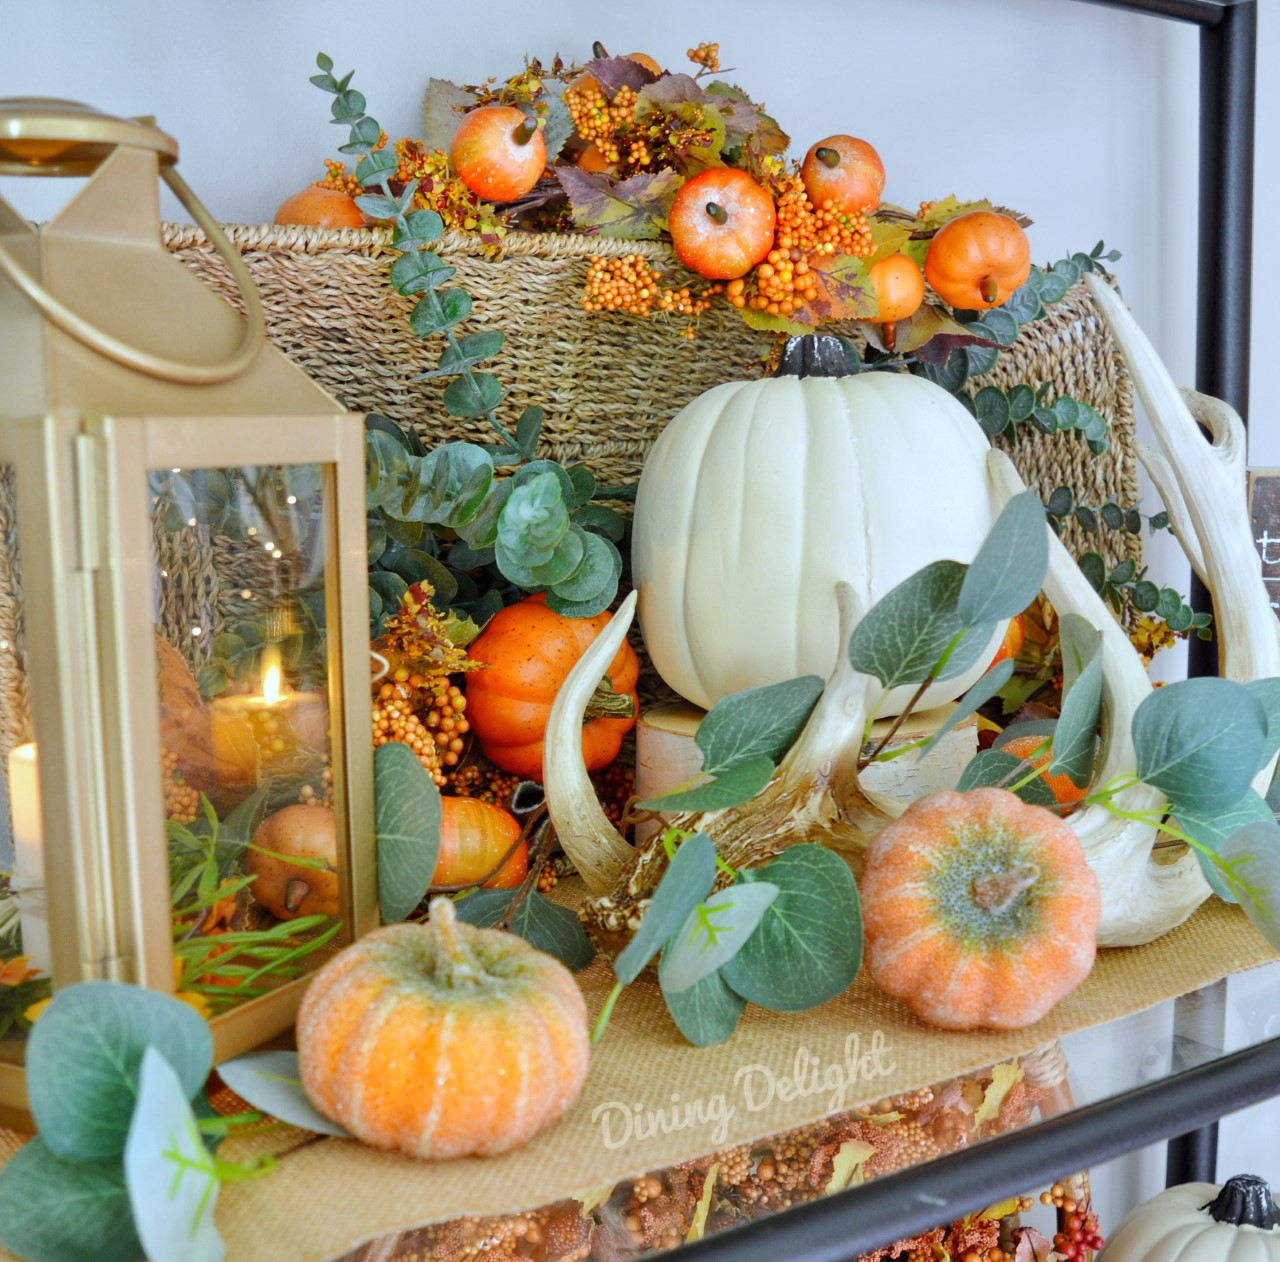 Fall Decor on Etagere